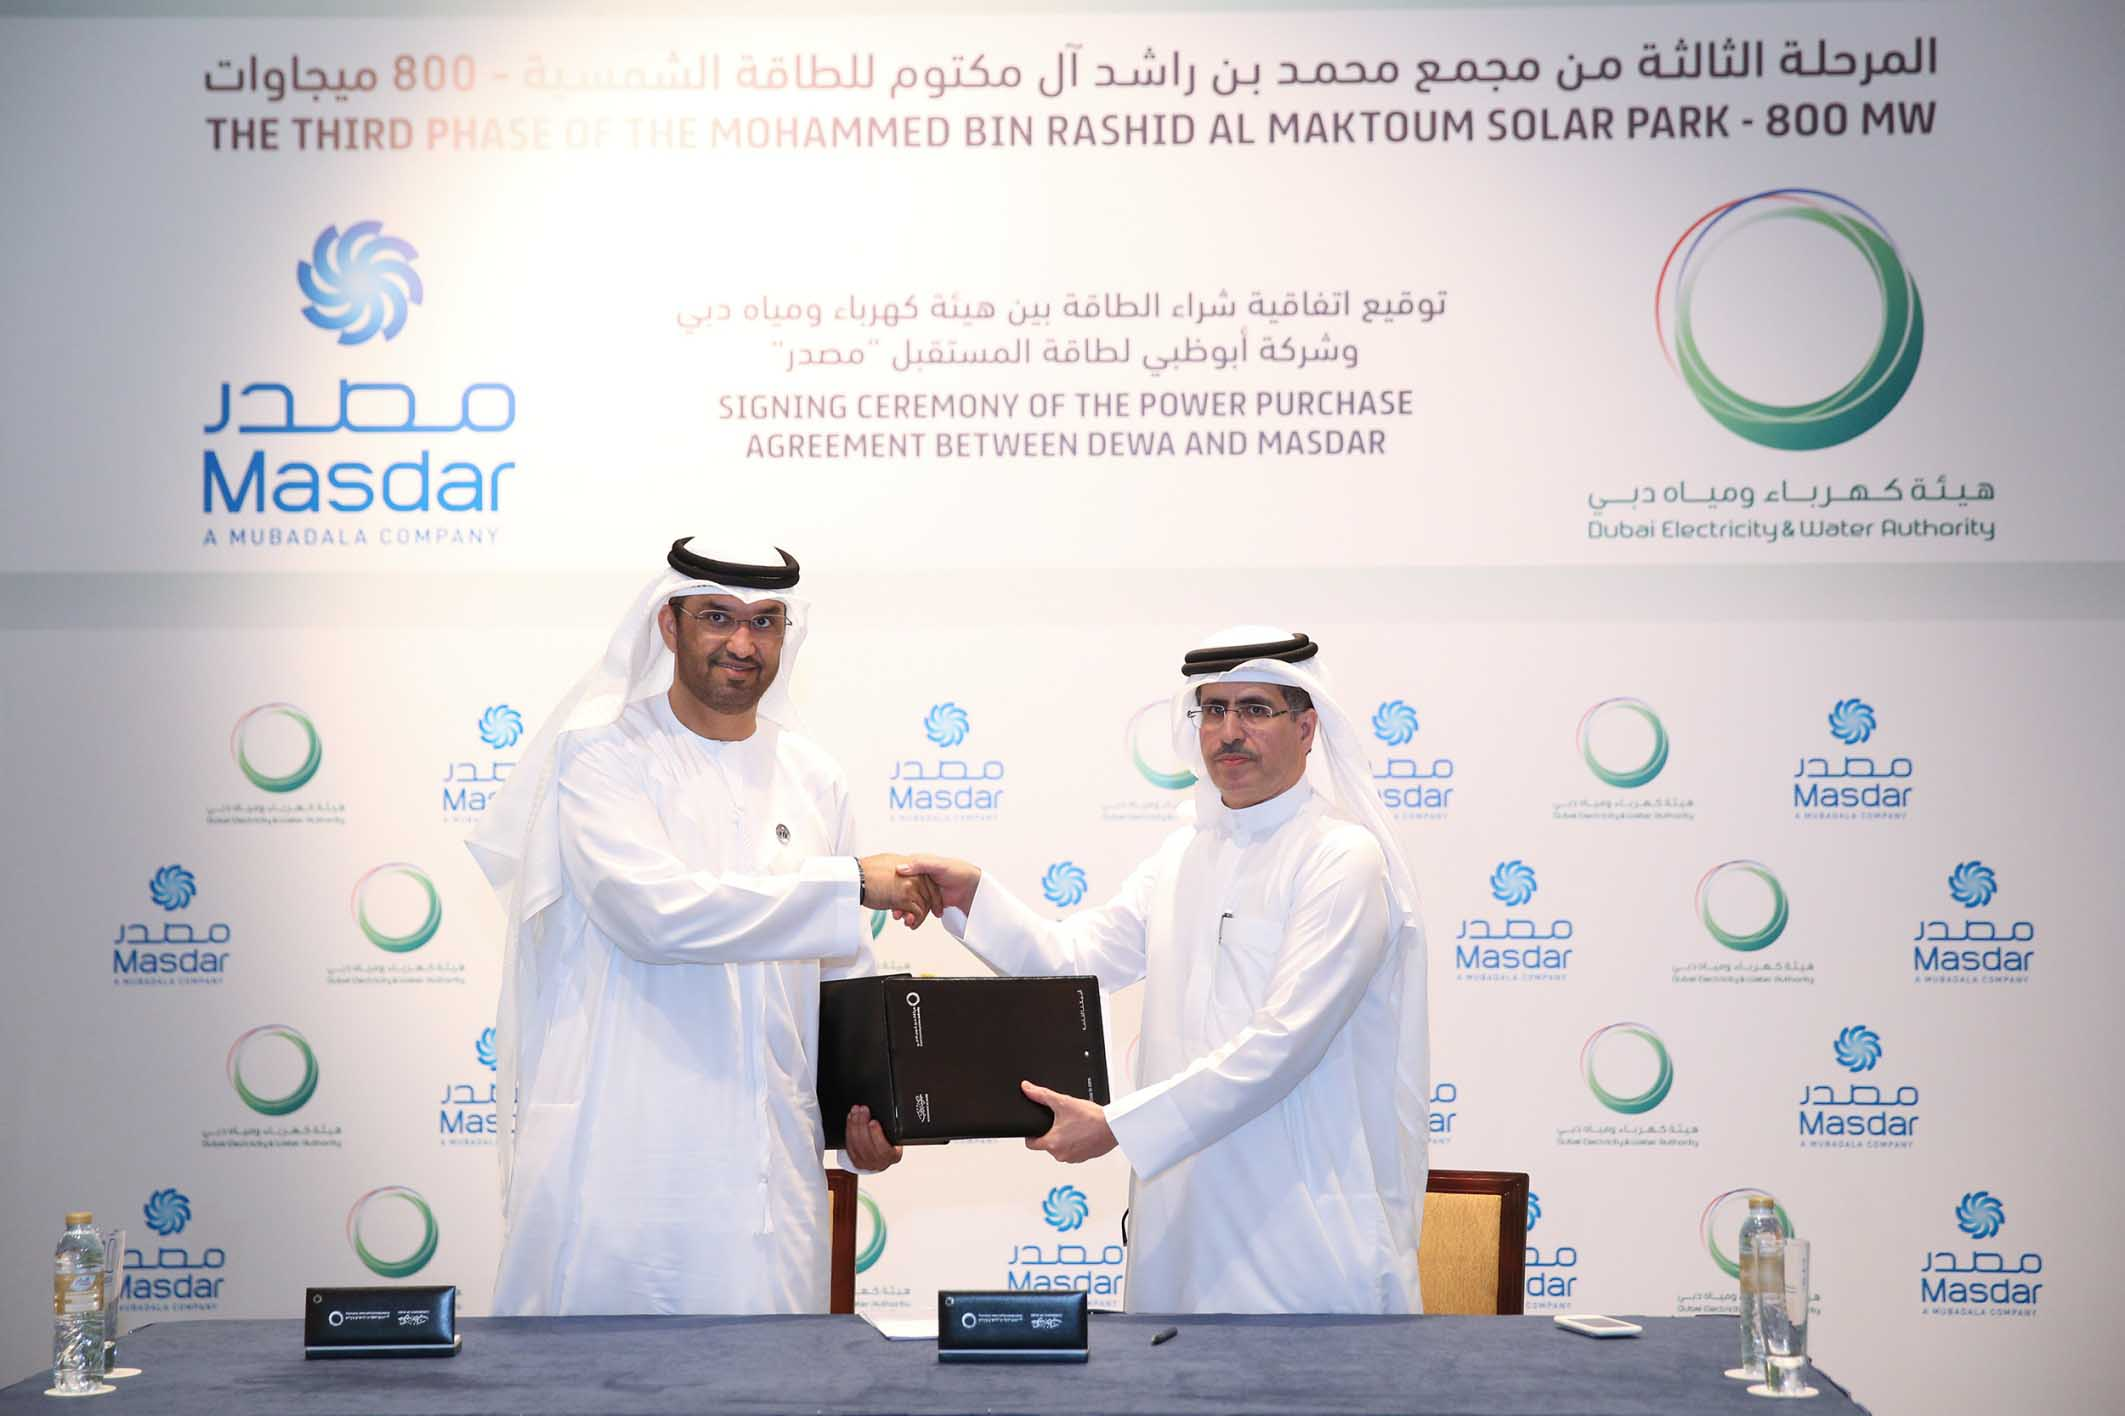 DEWA Signs Power Purchase Agreement with Masdar for Third